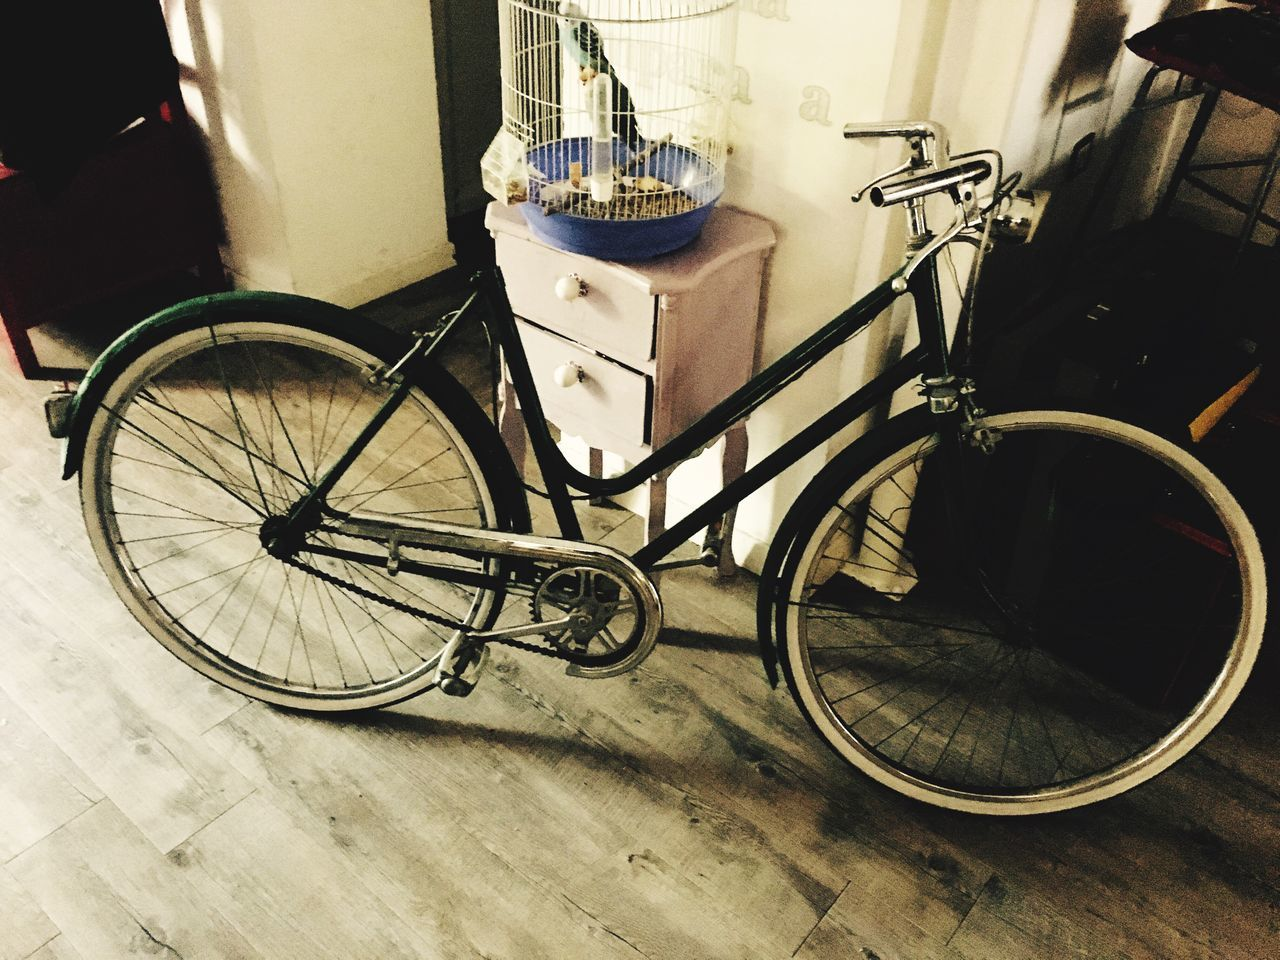 Bicycle Transportation Mode Of Transport Stationary Land Vehicle No People Outdoors Day